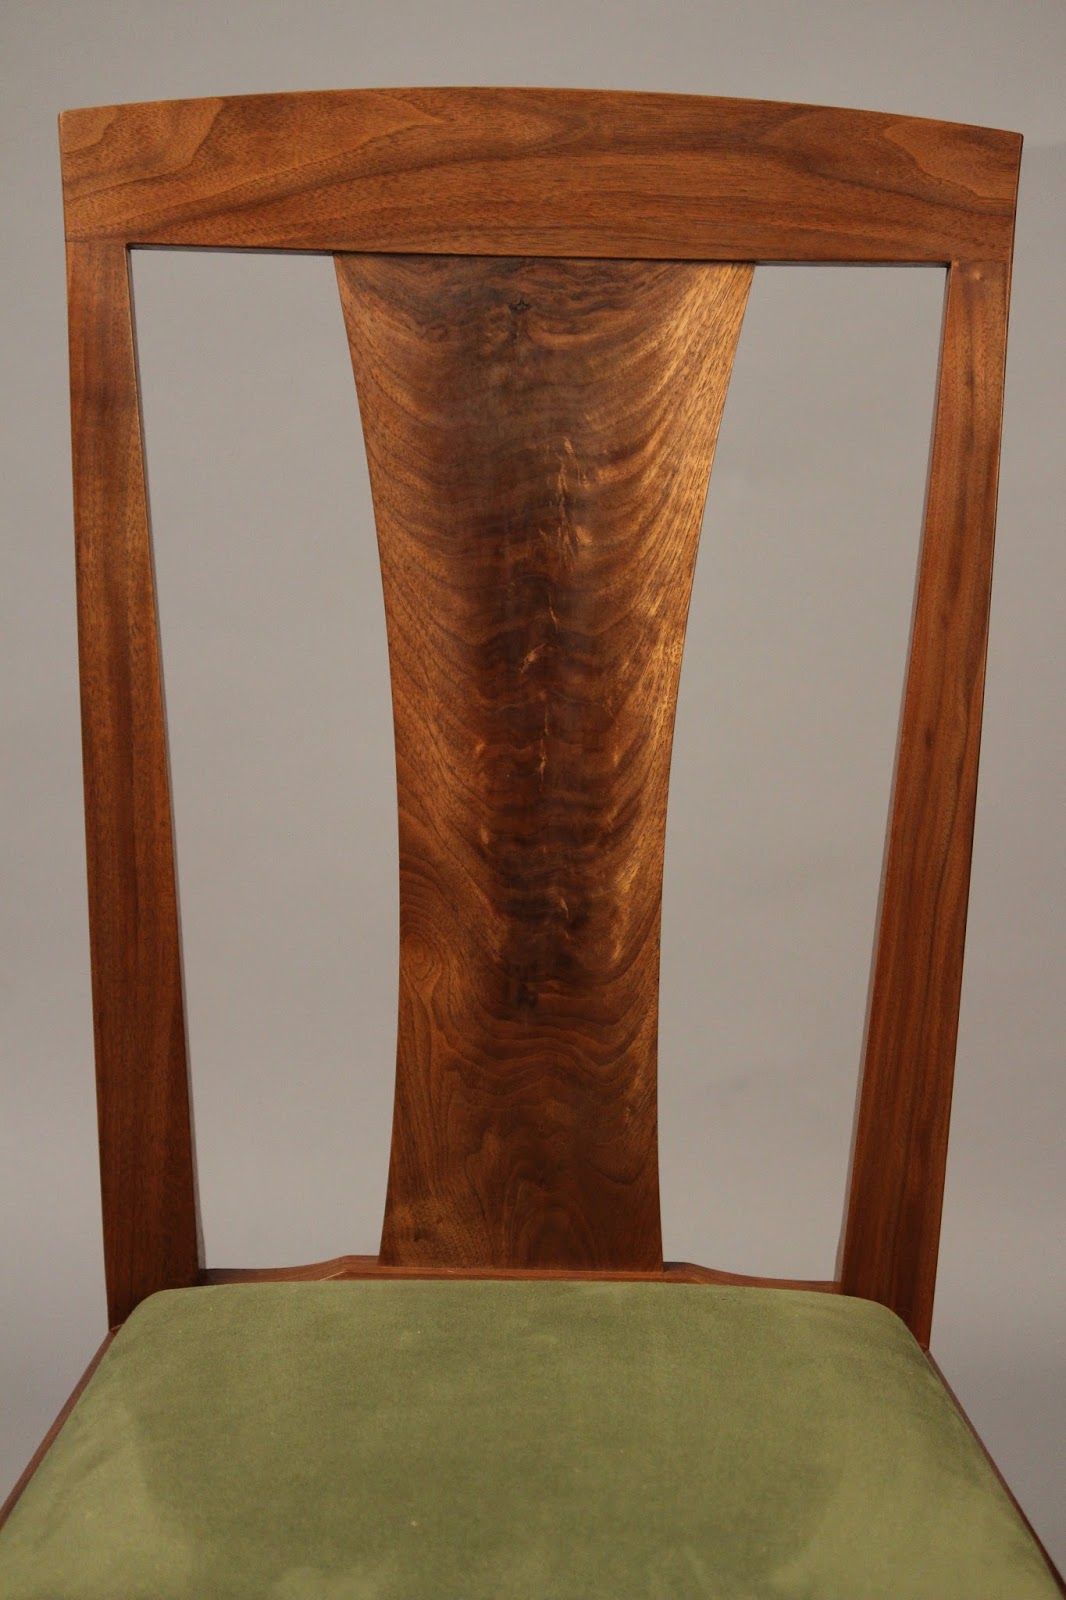 matthew wolfe chair maker